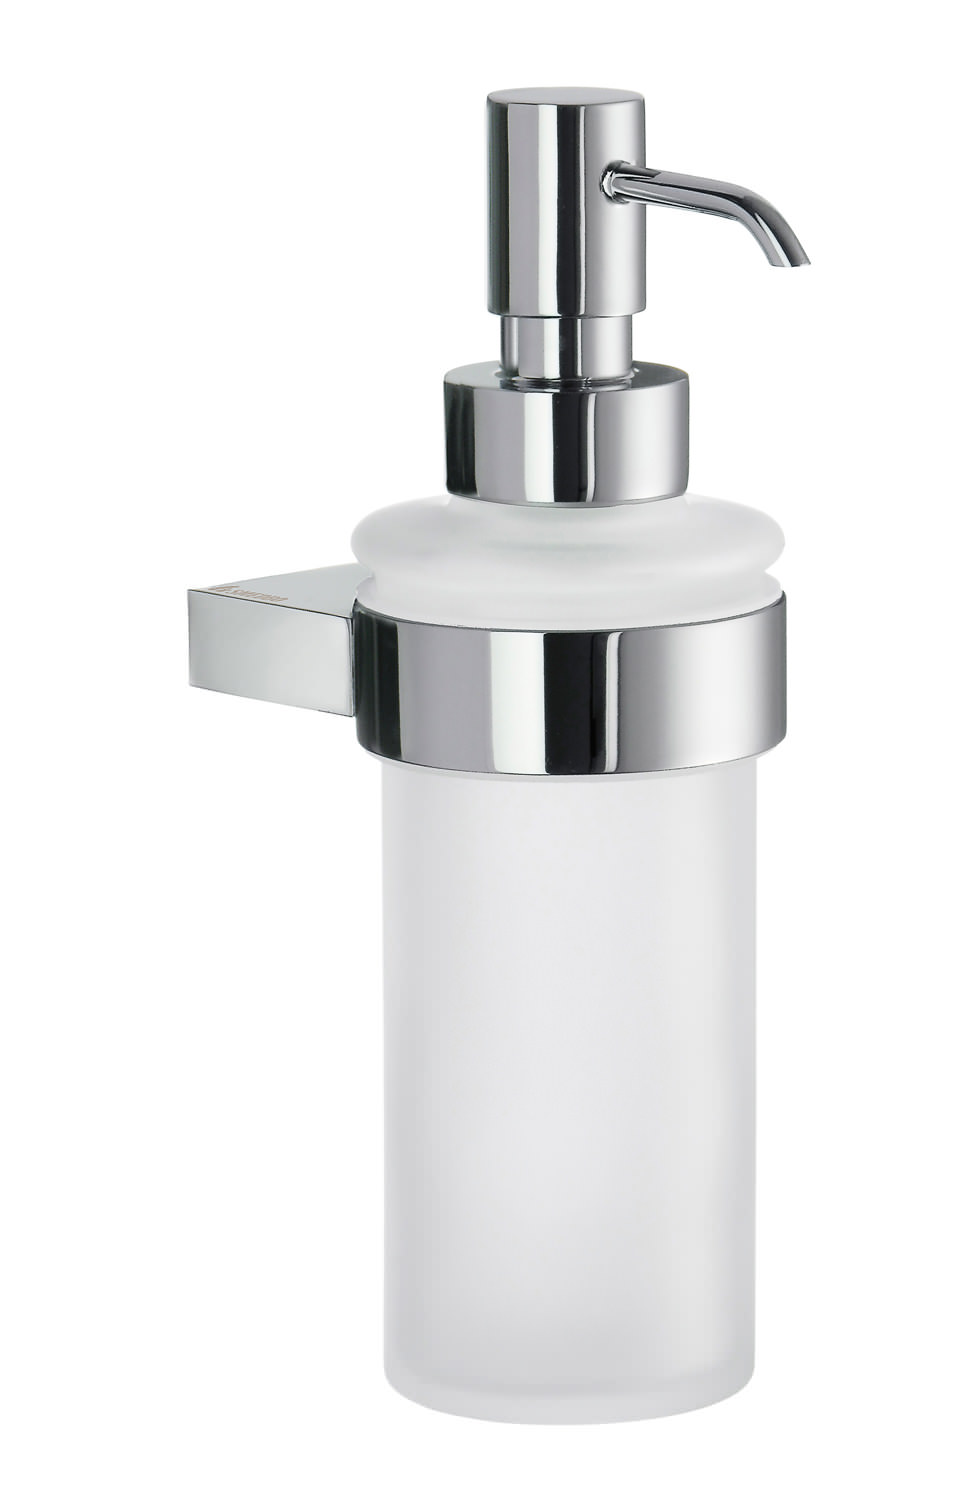 Seifenspender Küche Wandmontage Smedbo Air Frosted Glass Soap Dispenser With Holder - Ak369